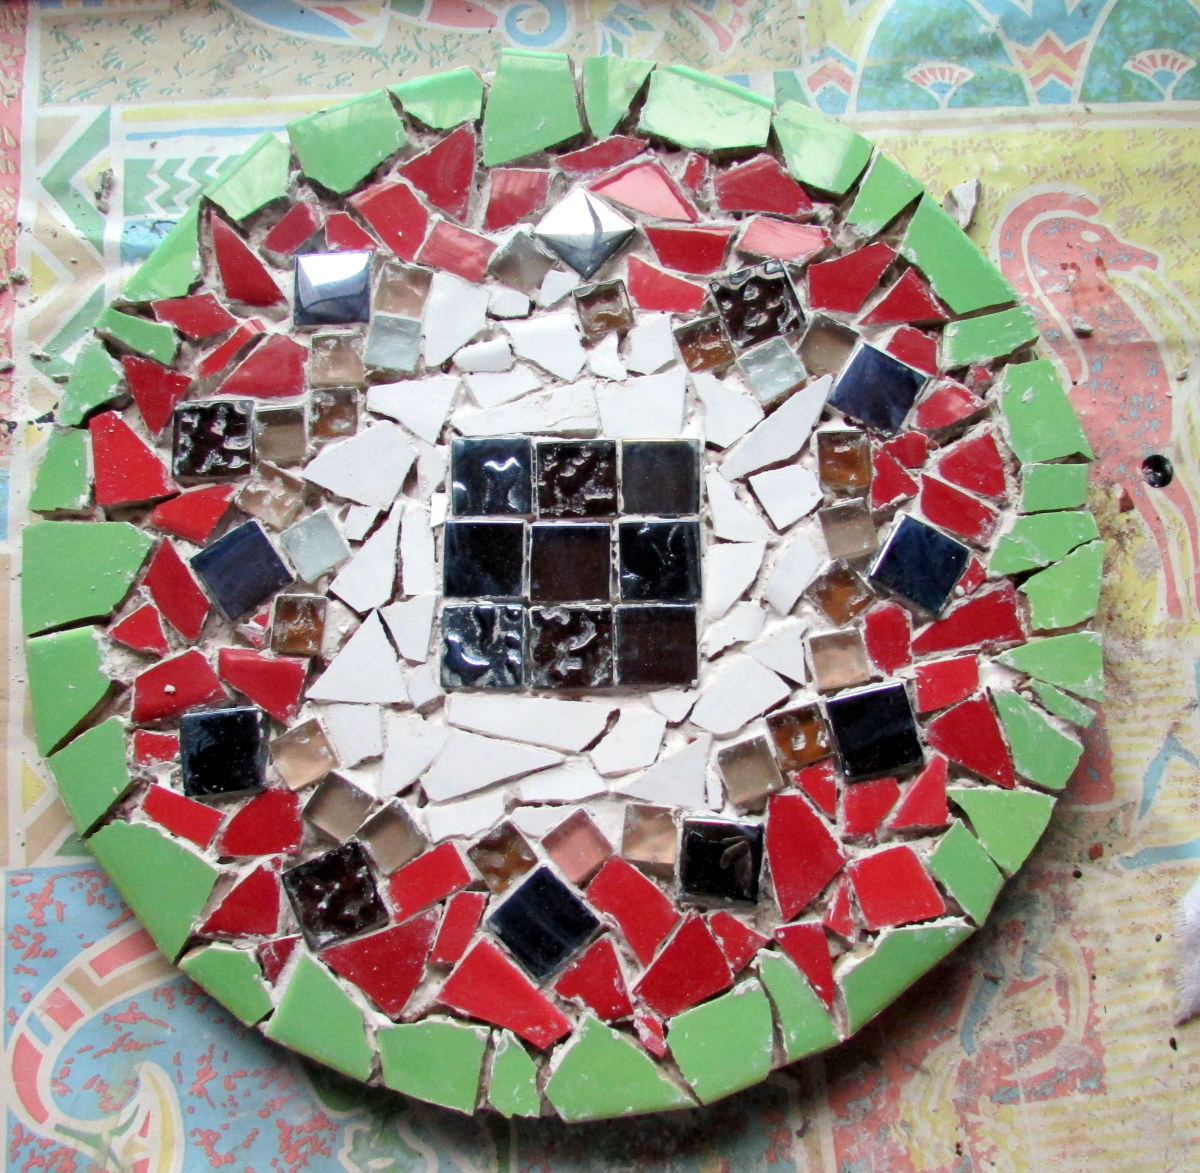 My mosaic design ready for the grouting